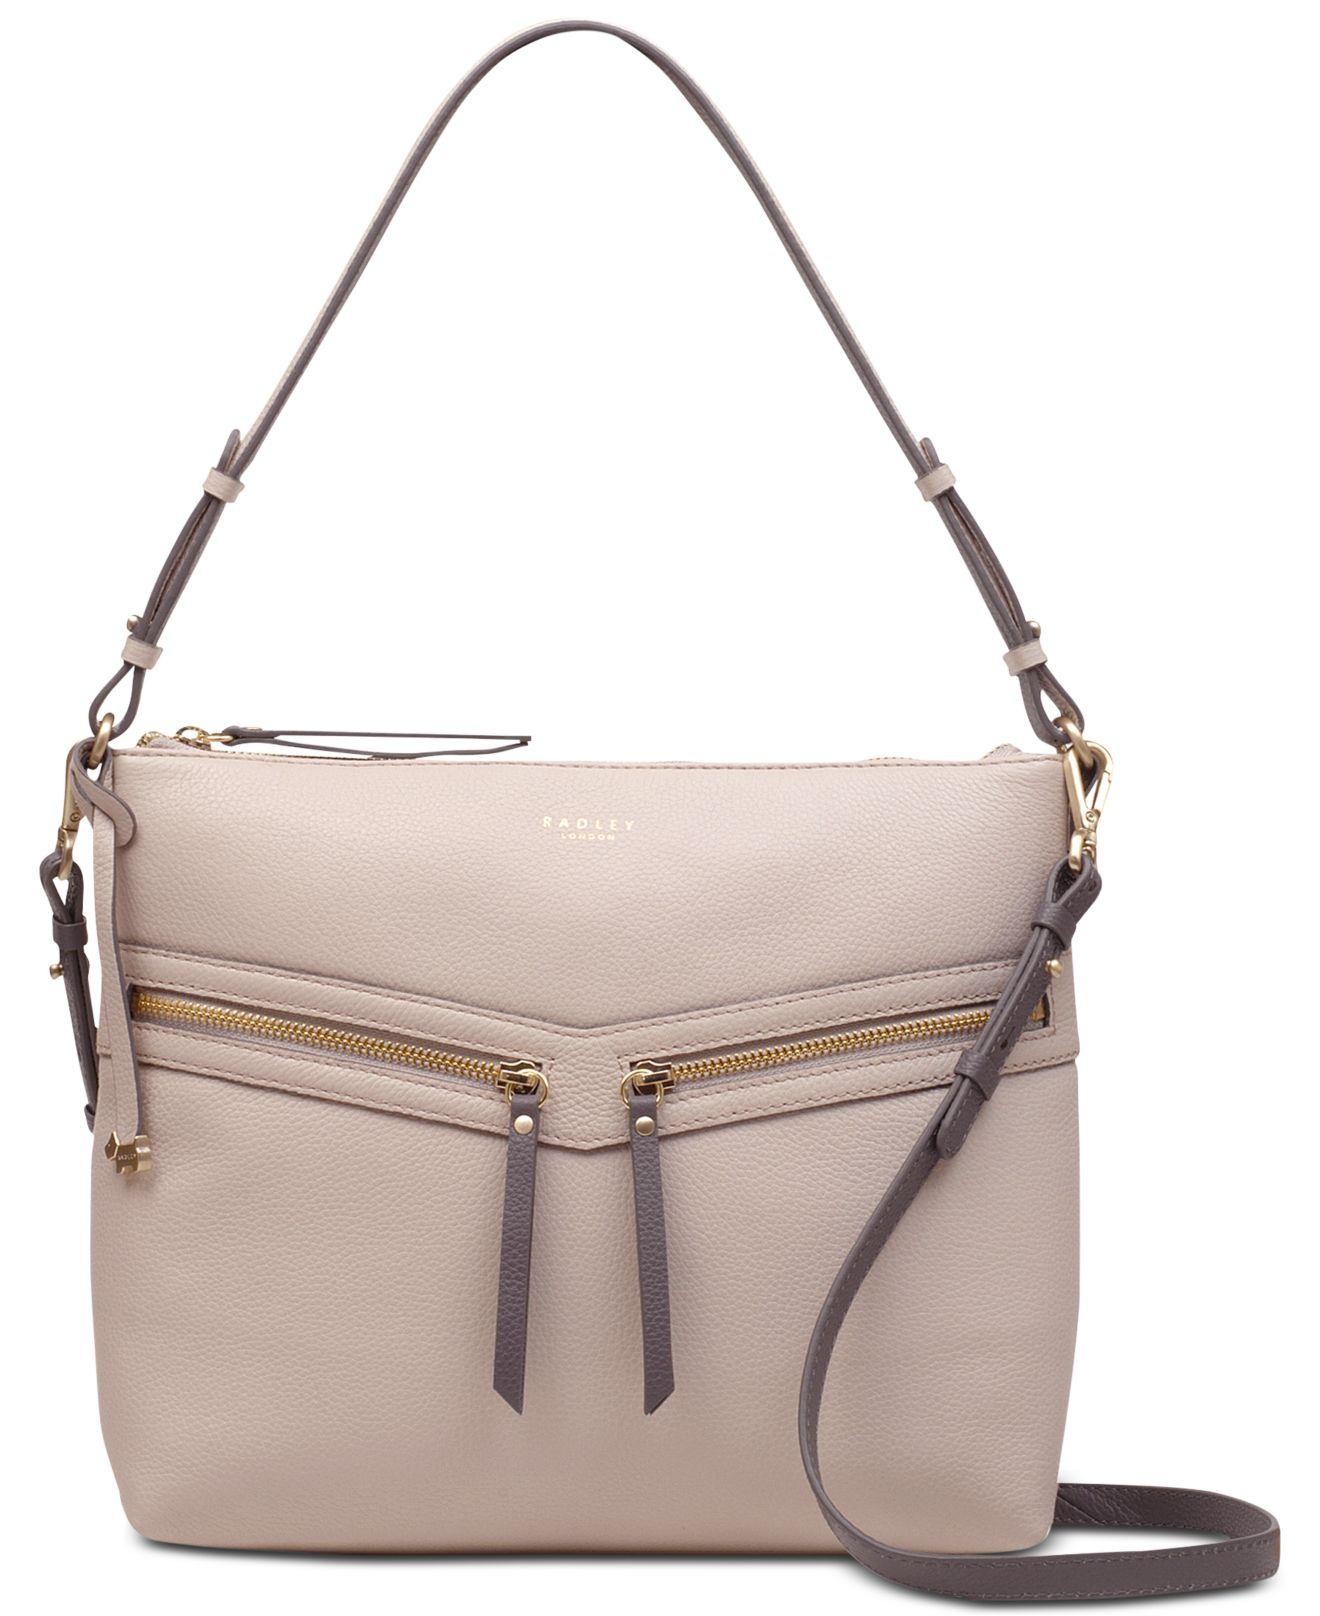 6022a6e1a09e98 Radley - Gray Smith Street Medium Zip-top Multiway Shoulder Bag - Lyst.  View fullscreen